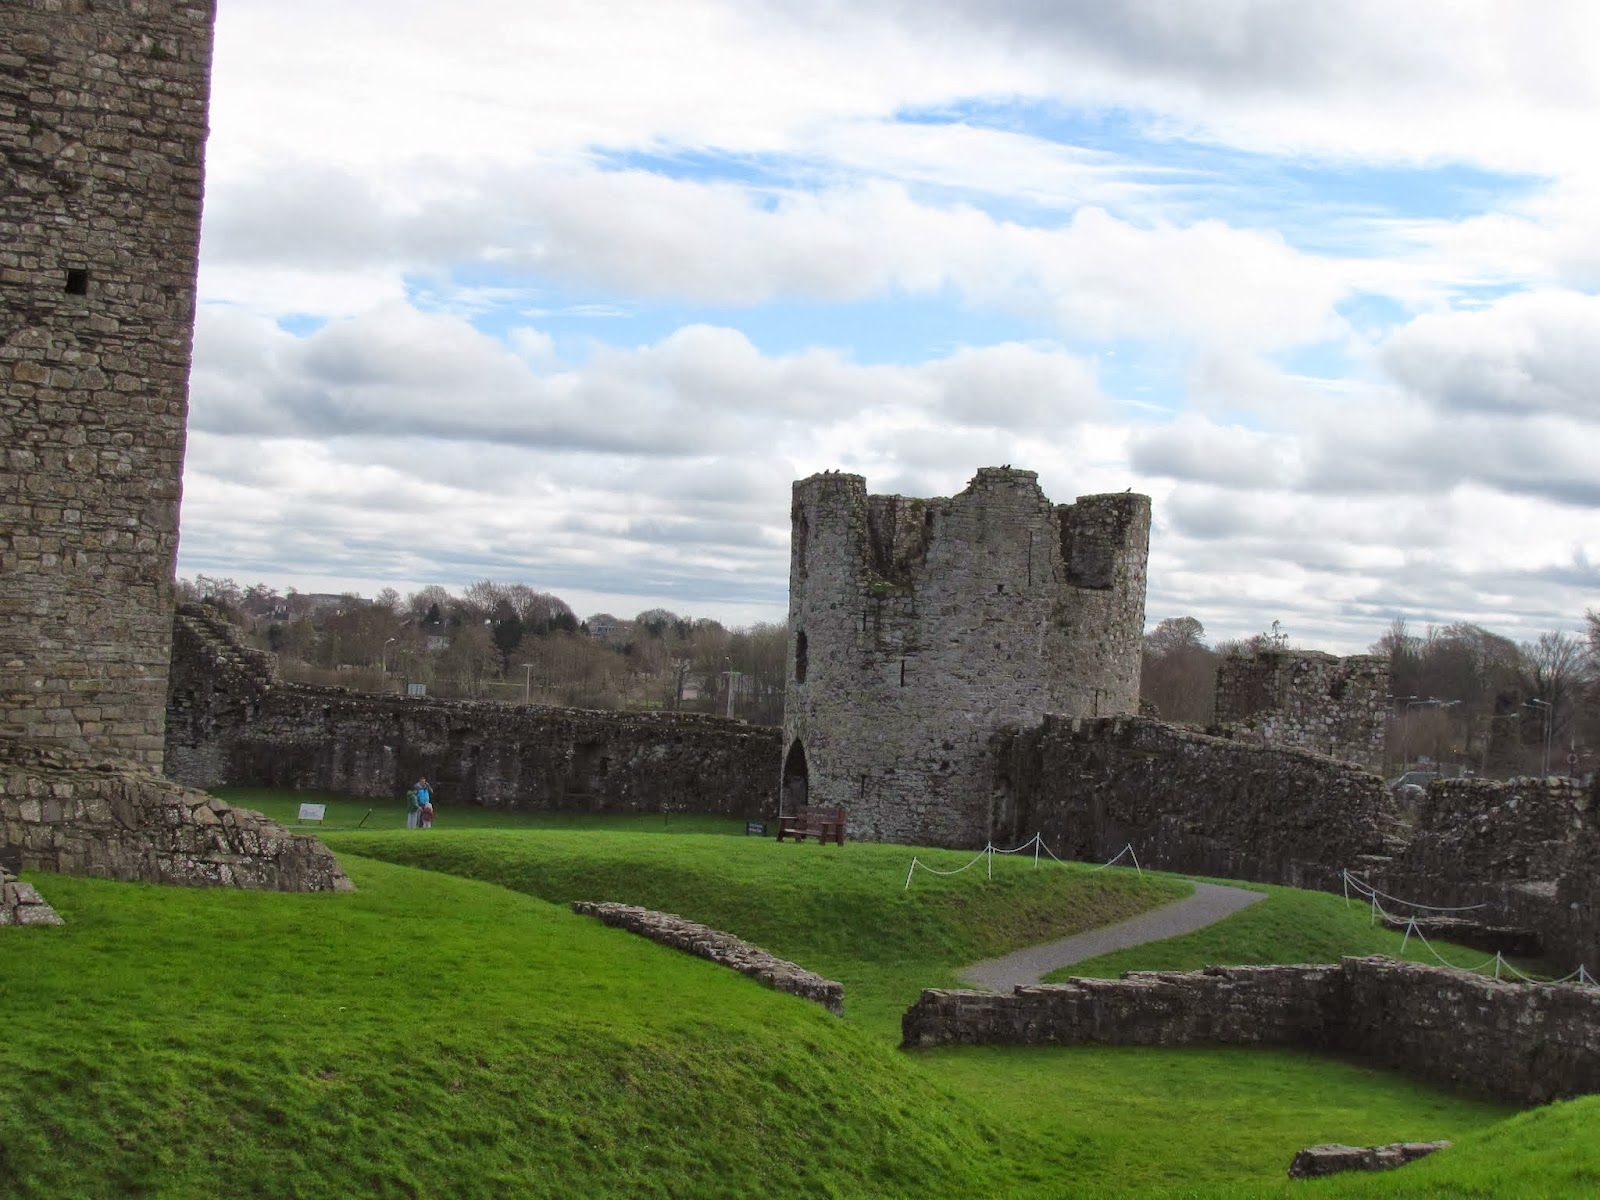 The famous Barbican Gate at Trim Castle in Trim, Ireland